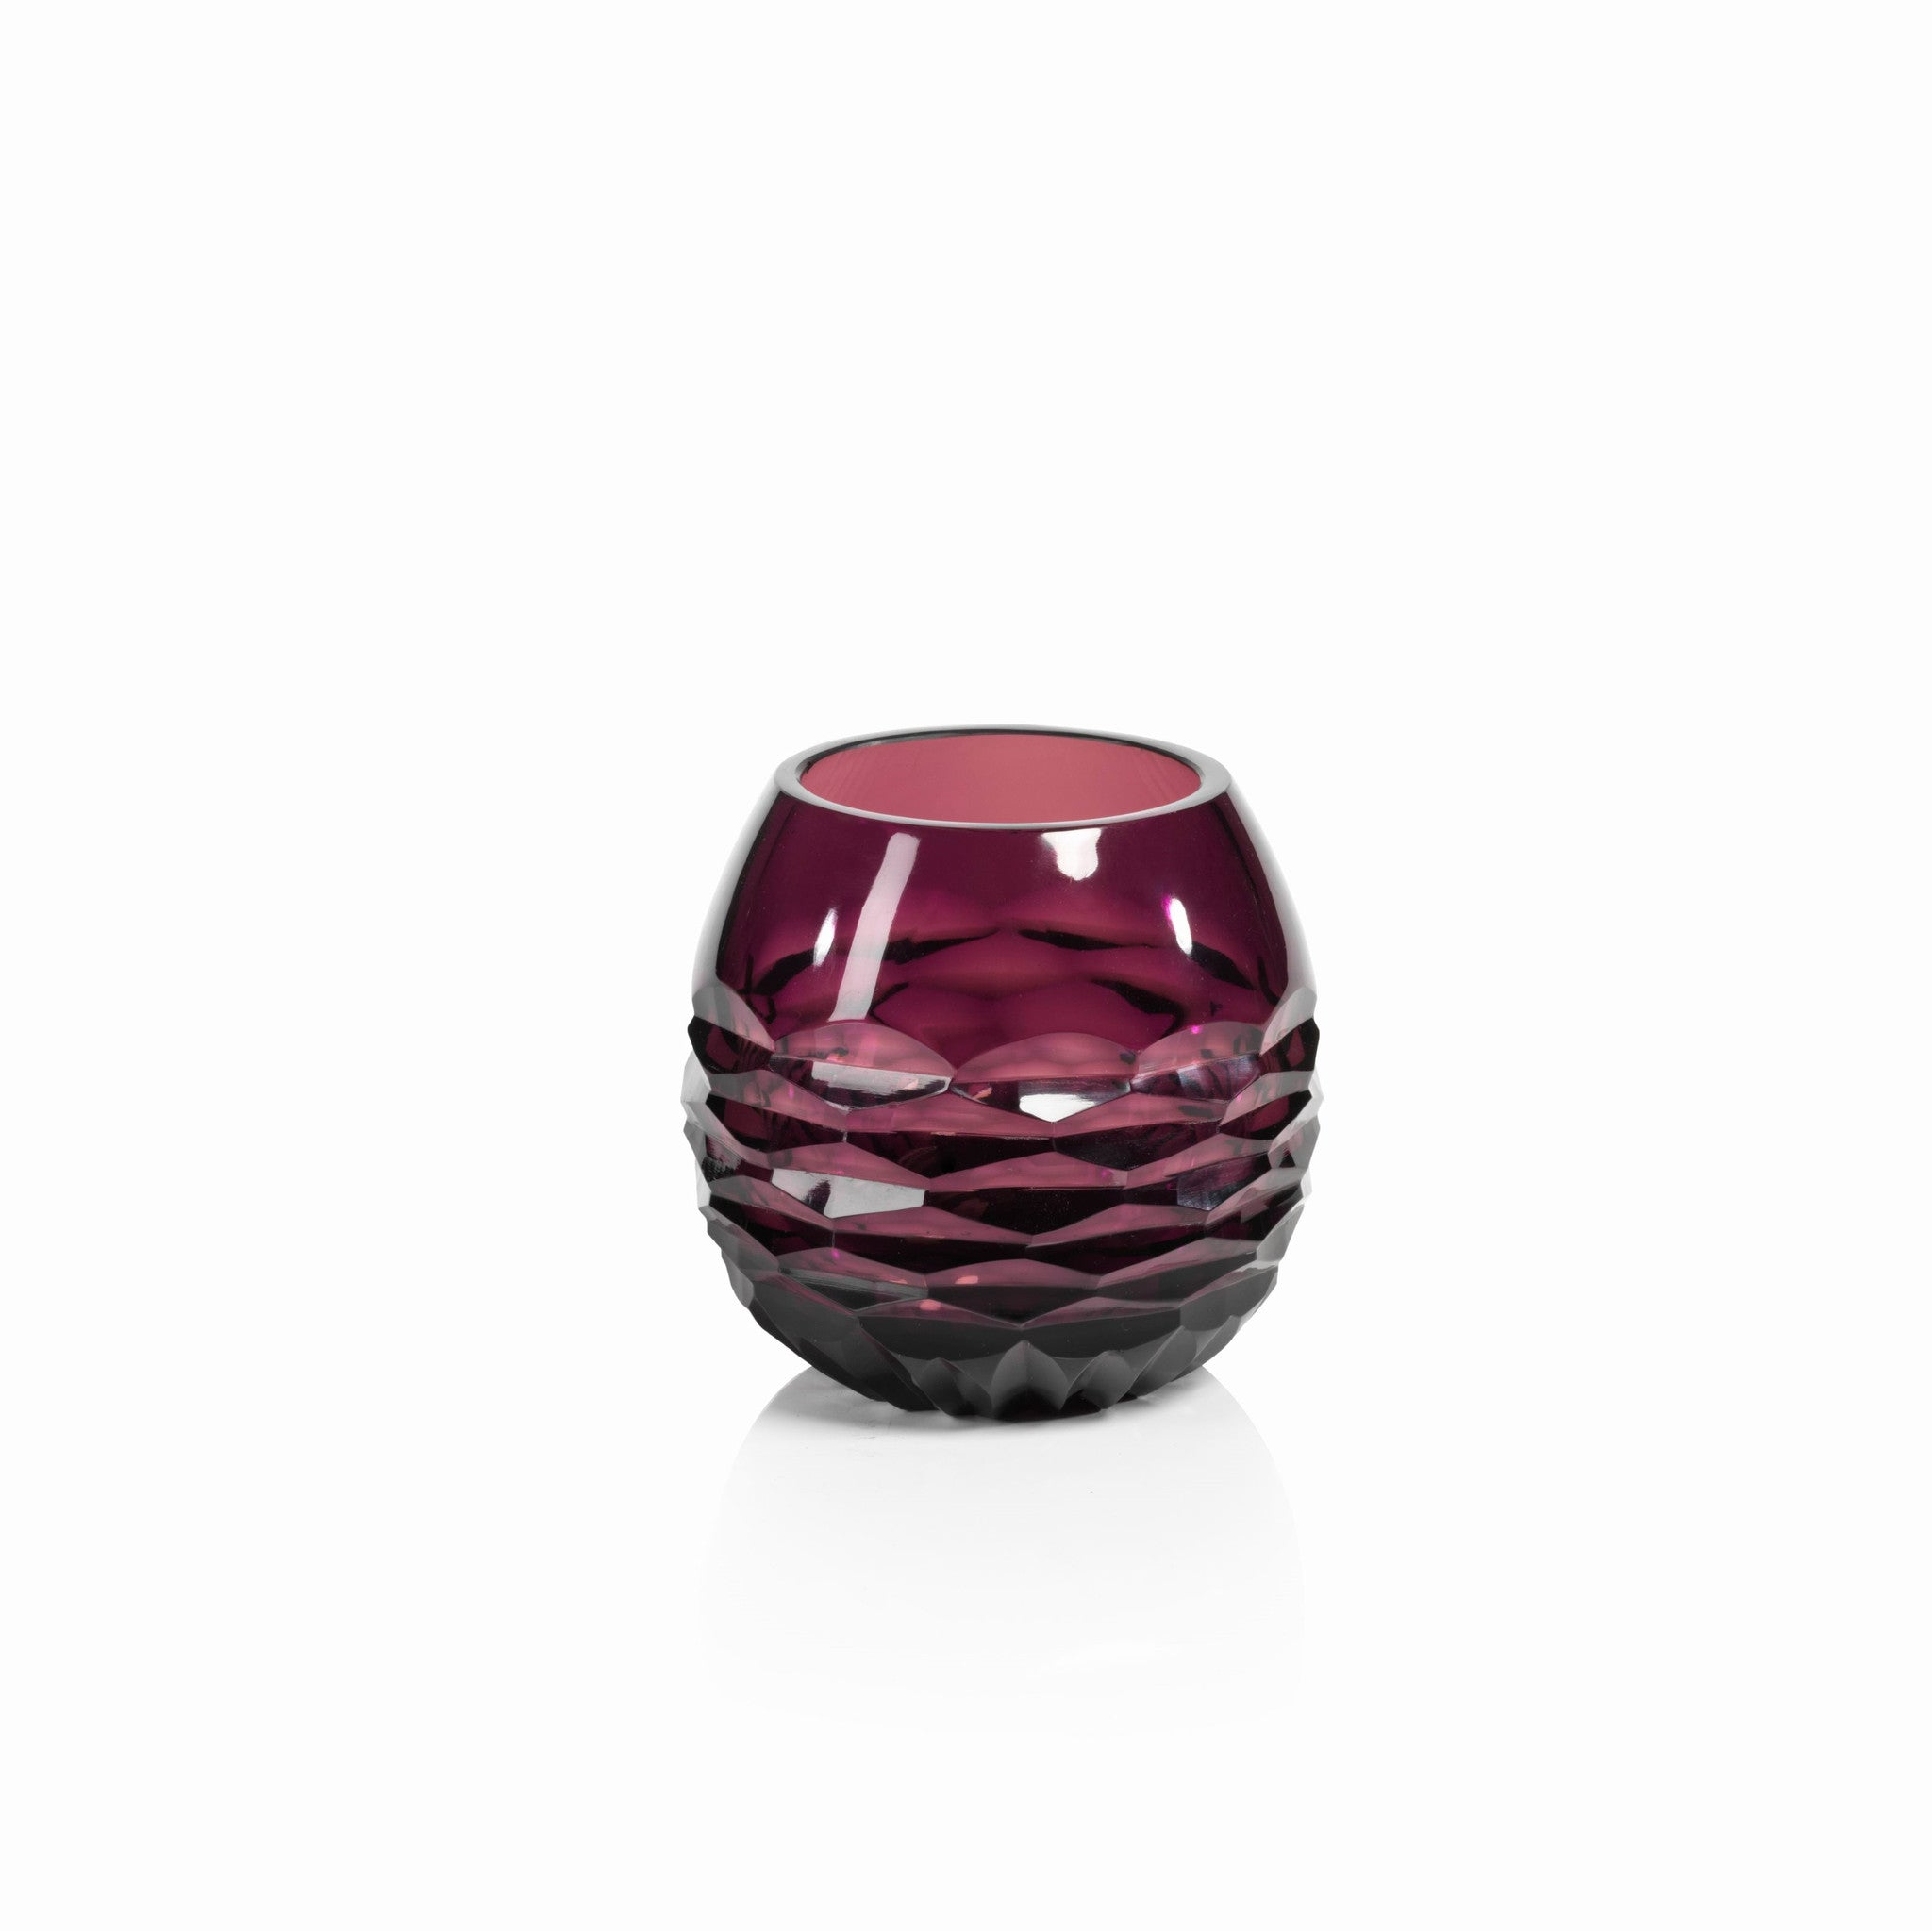 Taza Cut Glass Vase / Tealight Holder - CARLYLE AVENUE